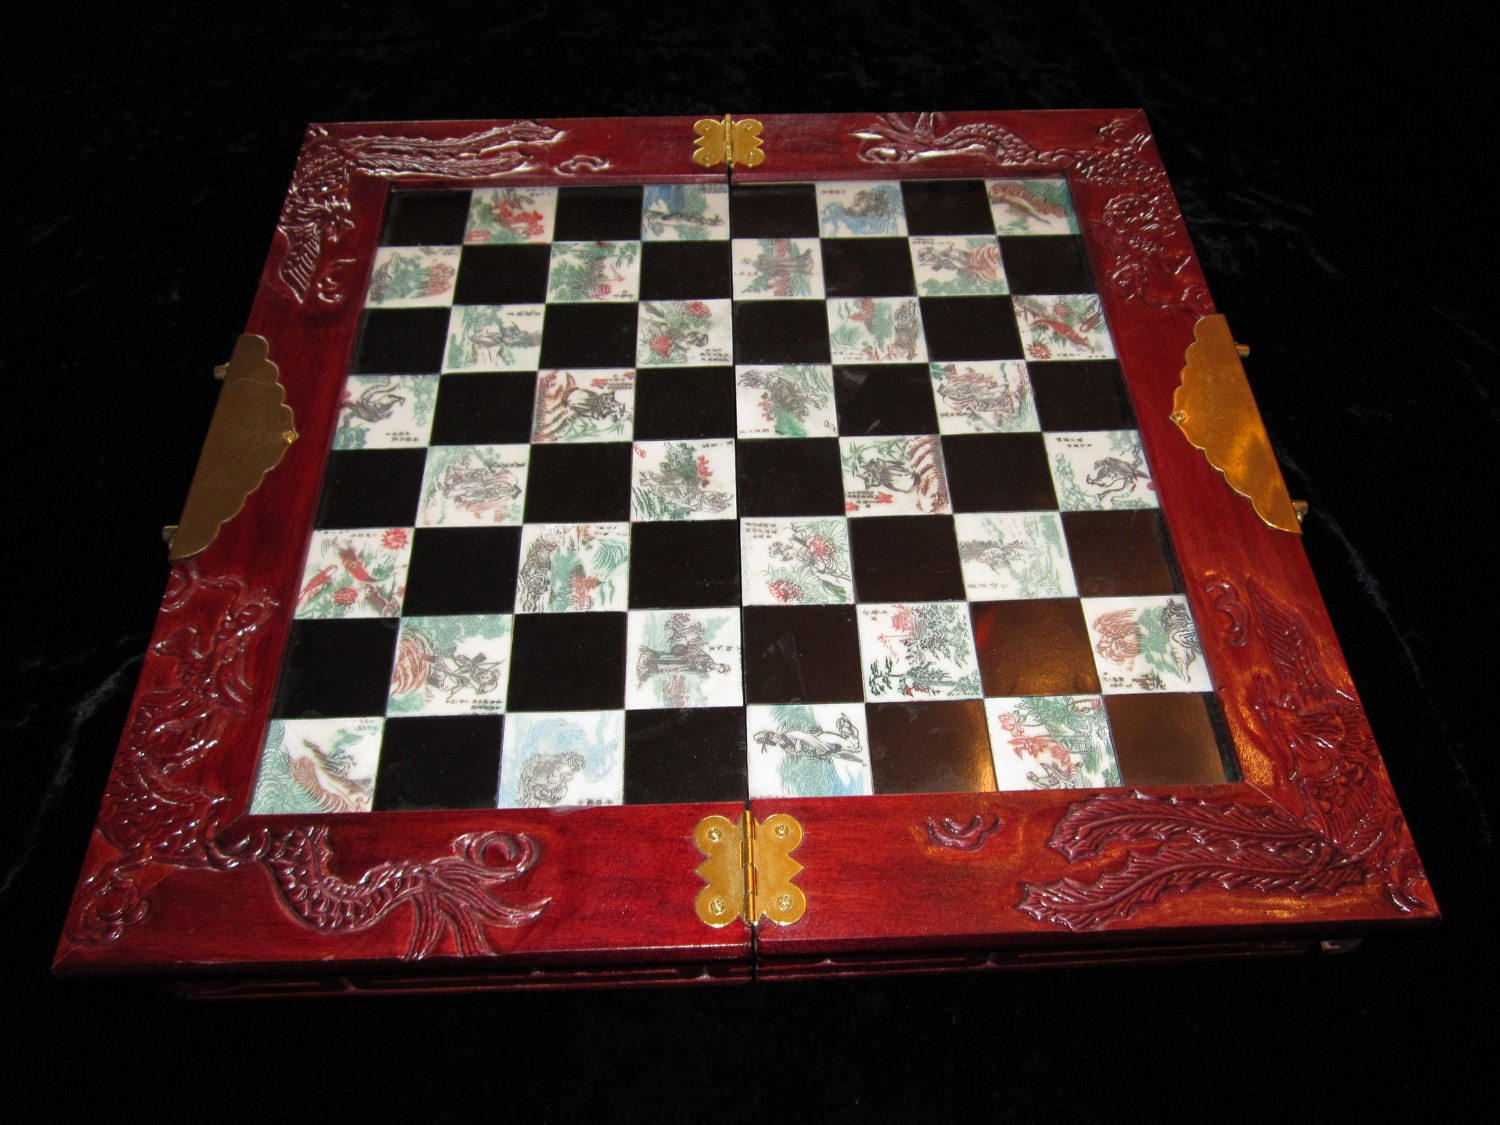 Vintage Japanese Portable Chess Set In Carved Wood By